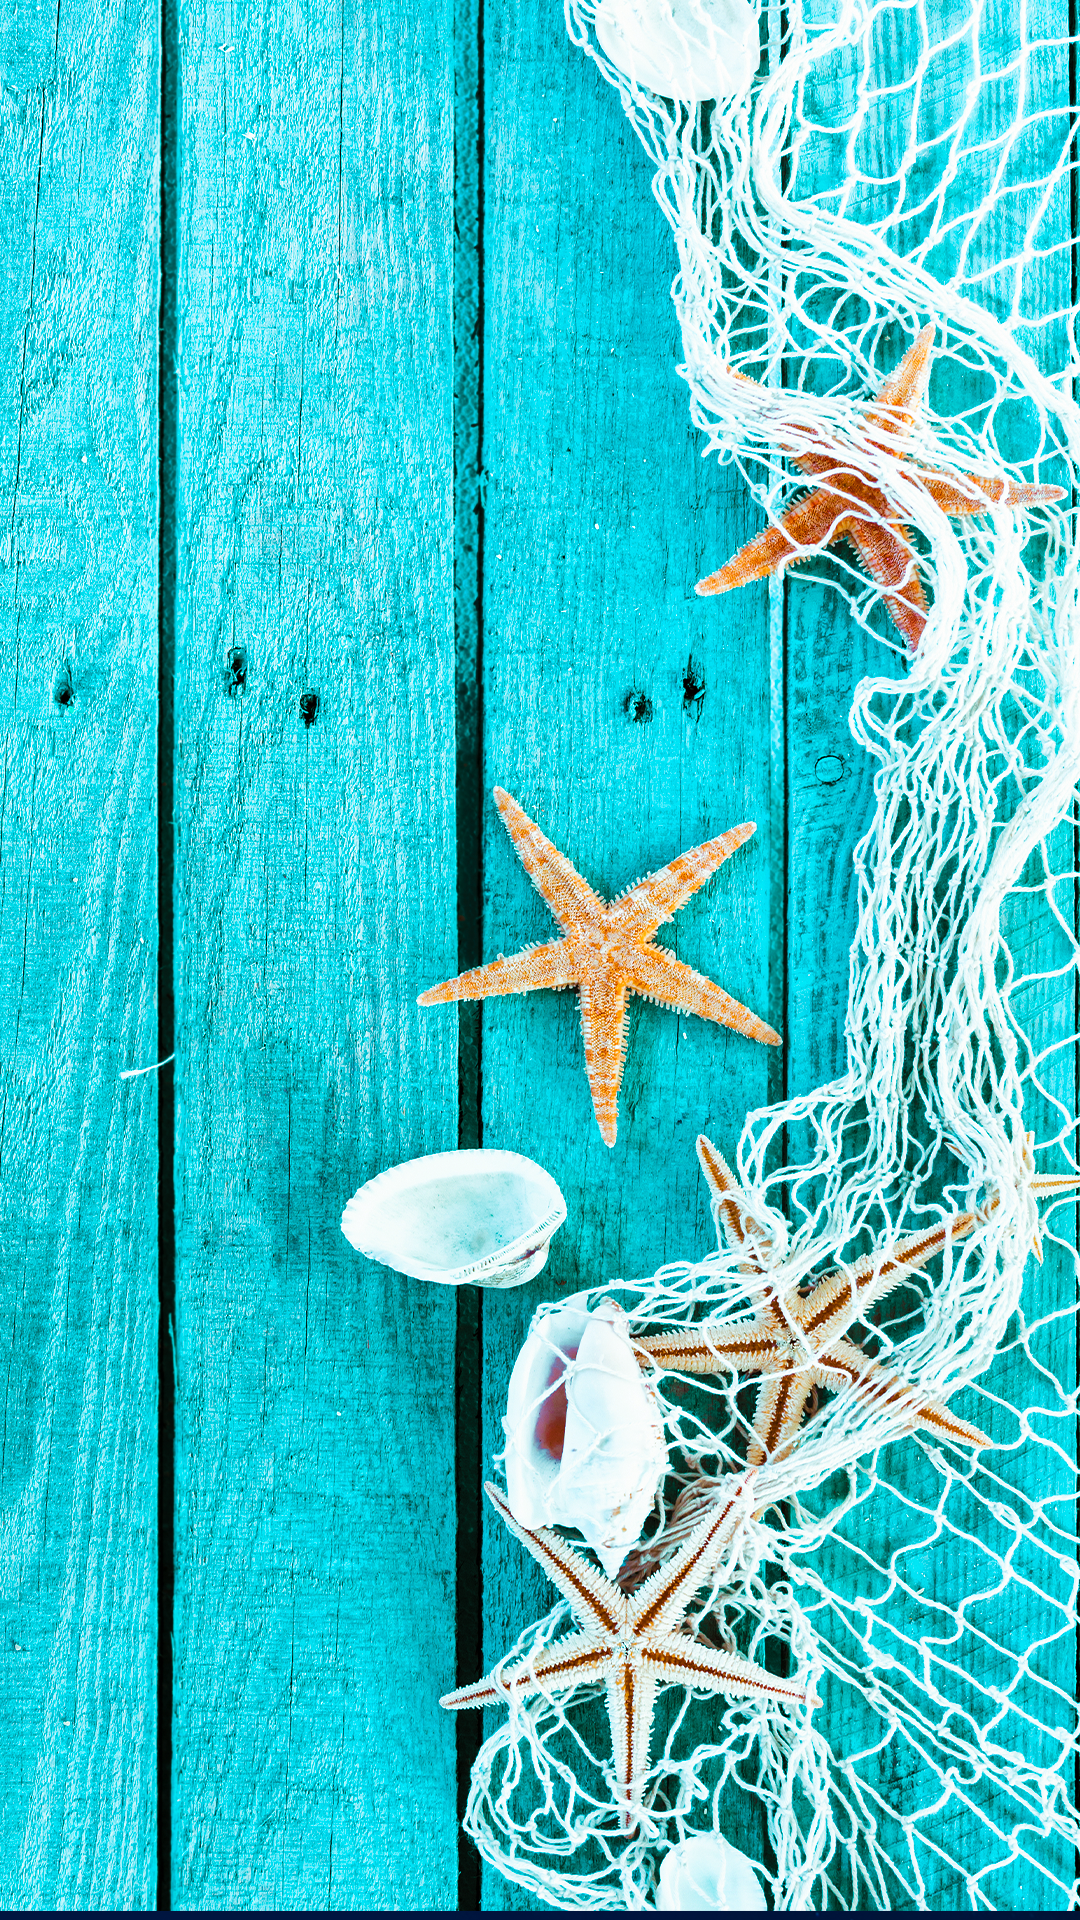 ↑↑TAP AND GET THE FREE APP Art Creative Sea Star Blue Wood